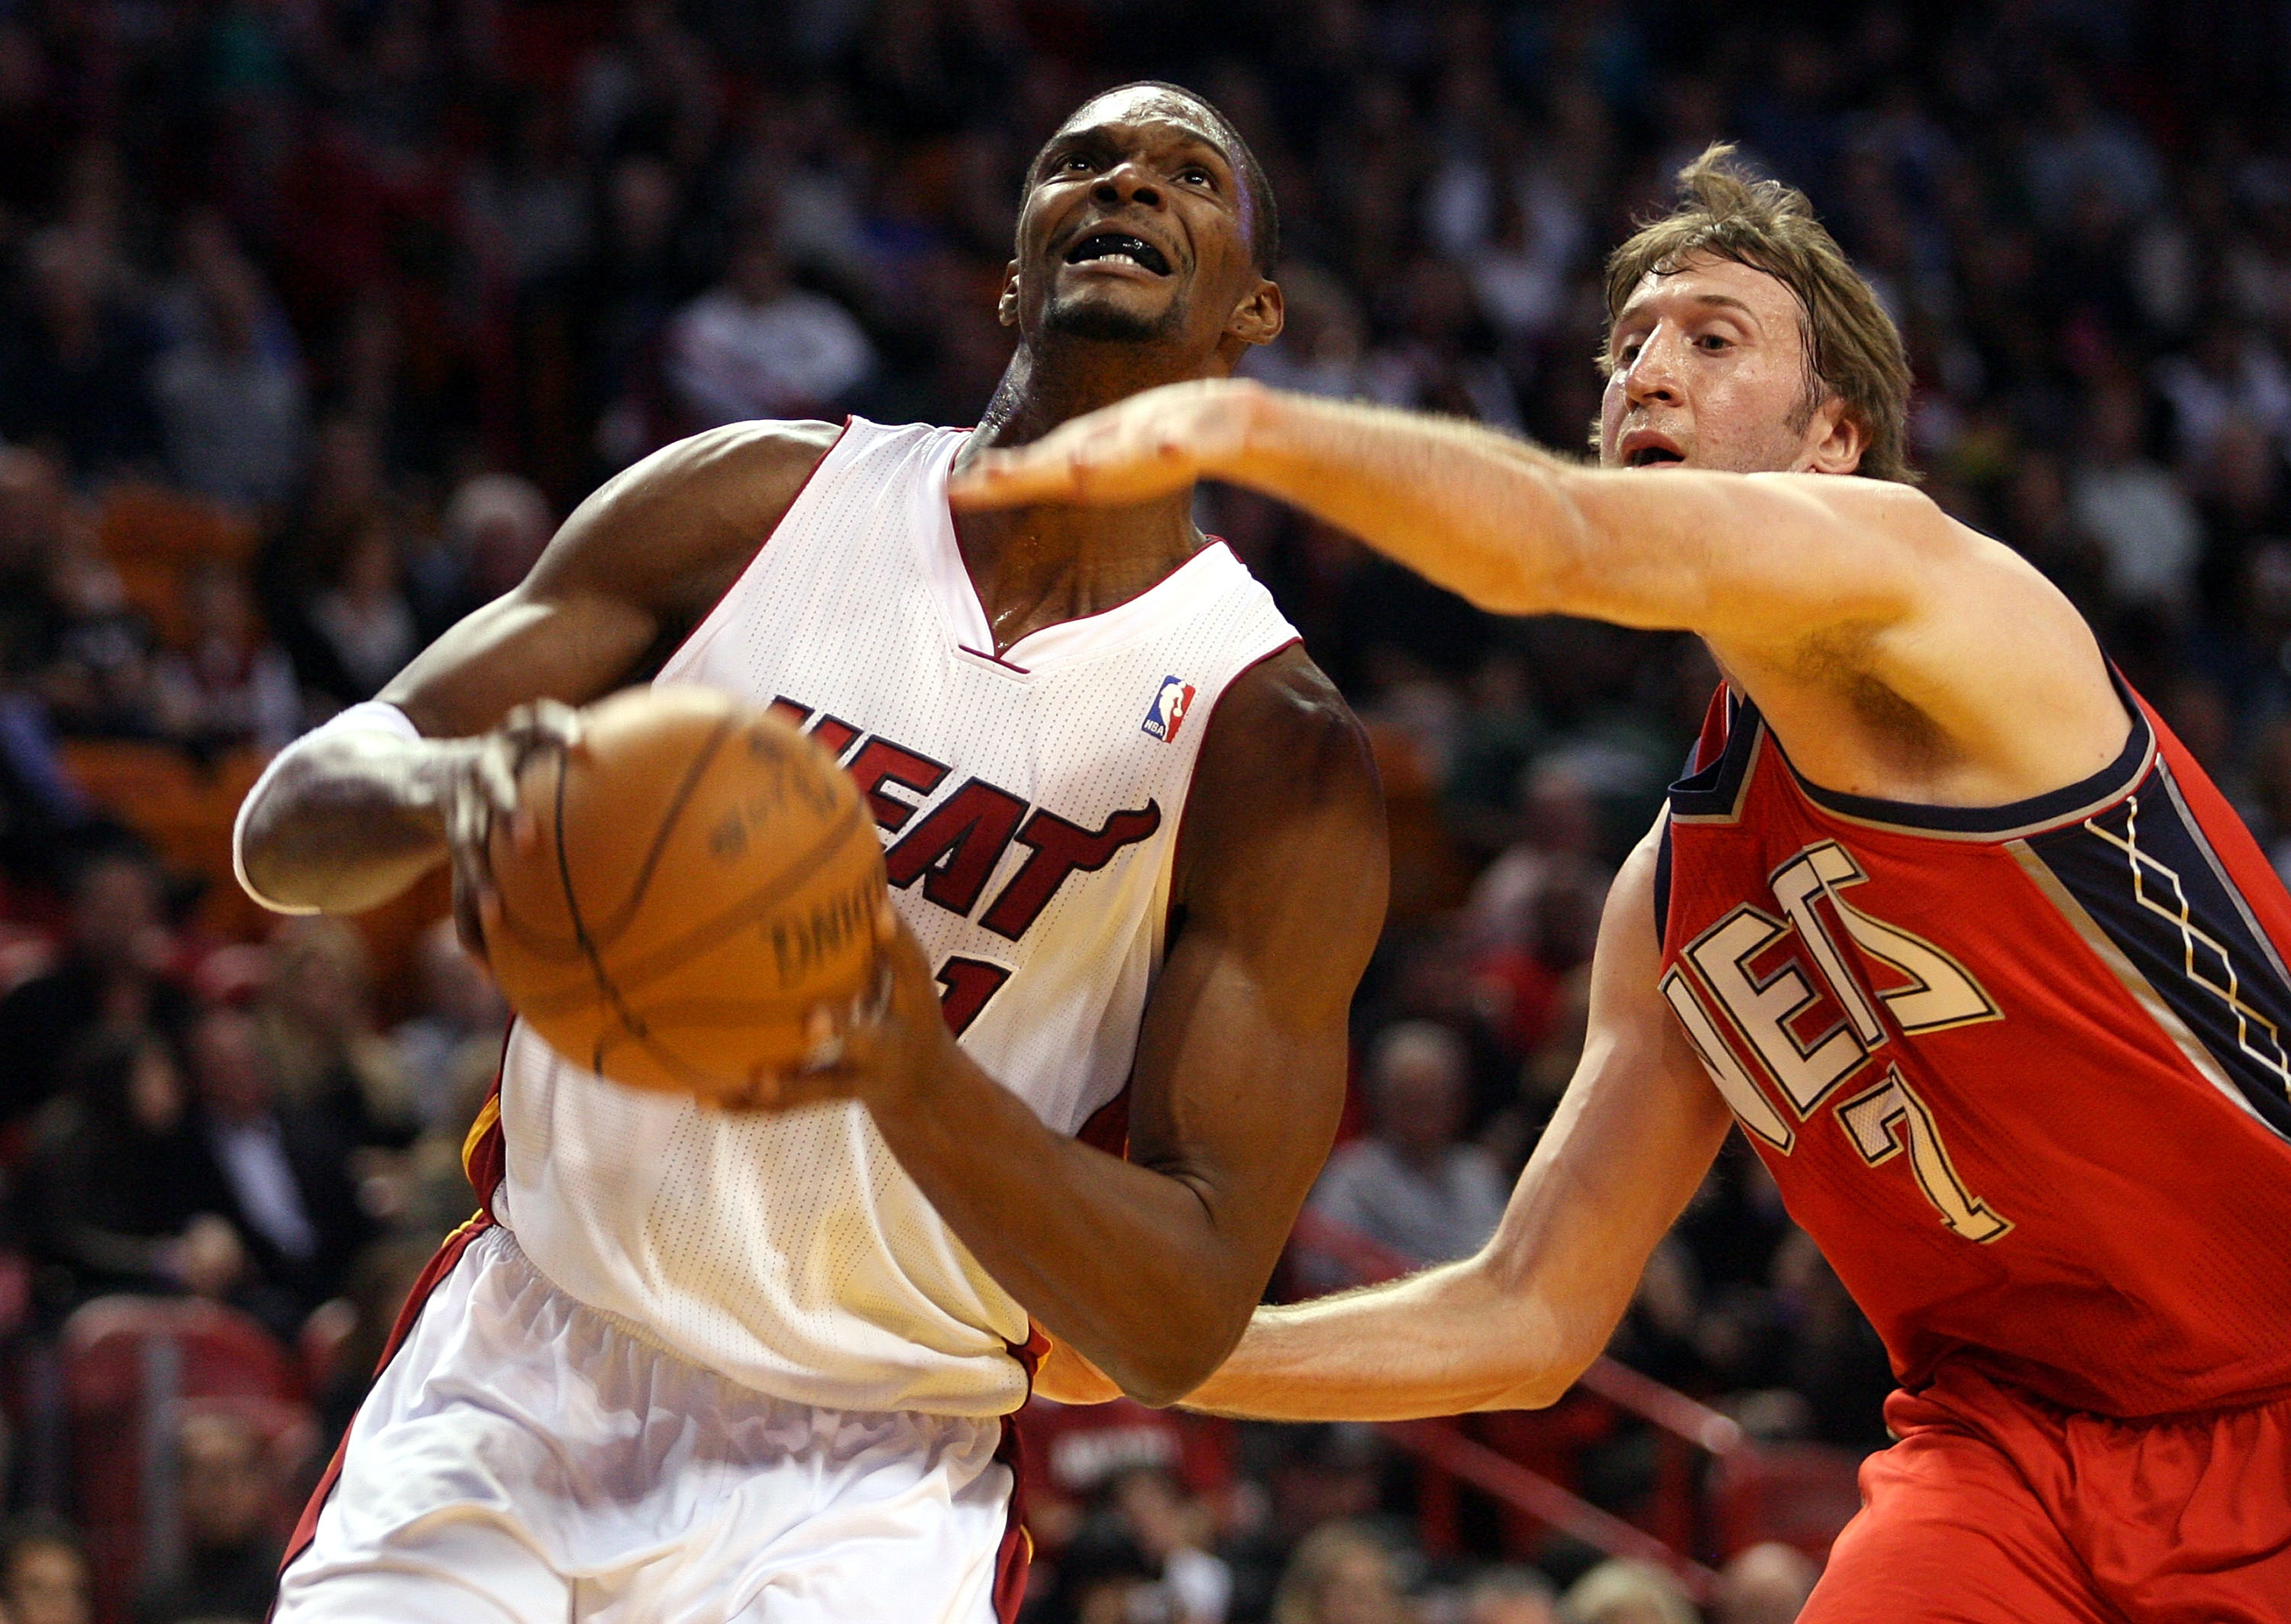 MIAMI - NOVEMBER 06:  Forward Chris Bosh #1 of the Miami Heat drives against center Troy Murphy #7 of the New Jersey Nets  at American Airlines Arena on November 6, 2010 in Miami, Florida. NOTE TO USER: User expressly acknowledges and agrees that, by down